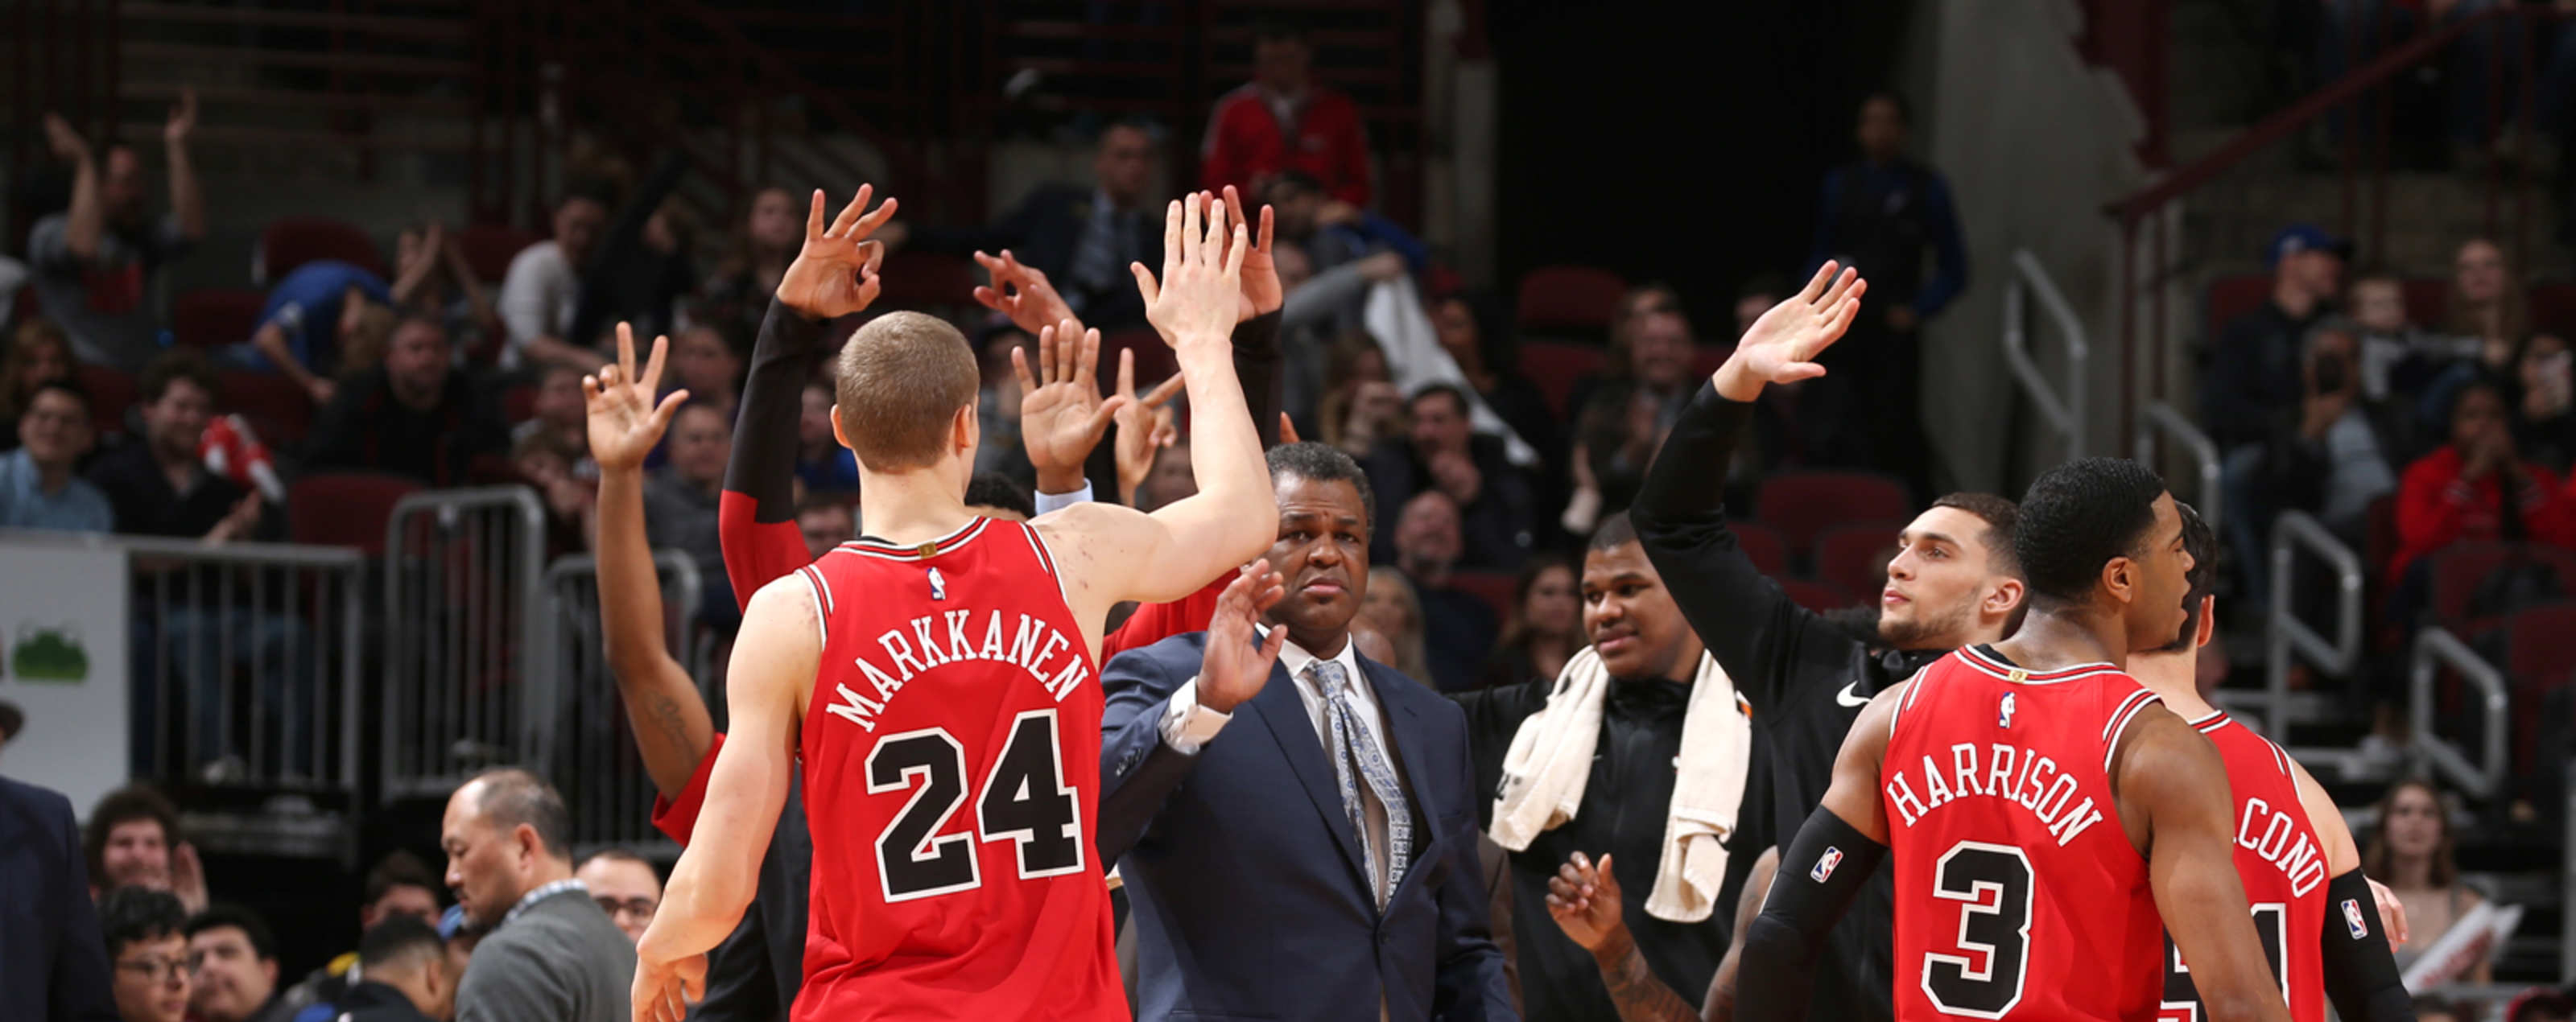 Lauri Markkanen #24 of the Chicago Bulls high fives his teammates during the game against the Washington Wizards on March 20, 2019 at the United Center in Chicago, Illinois.